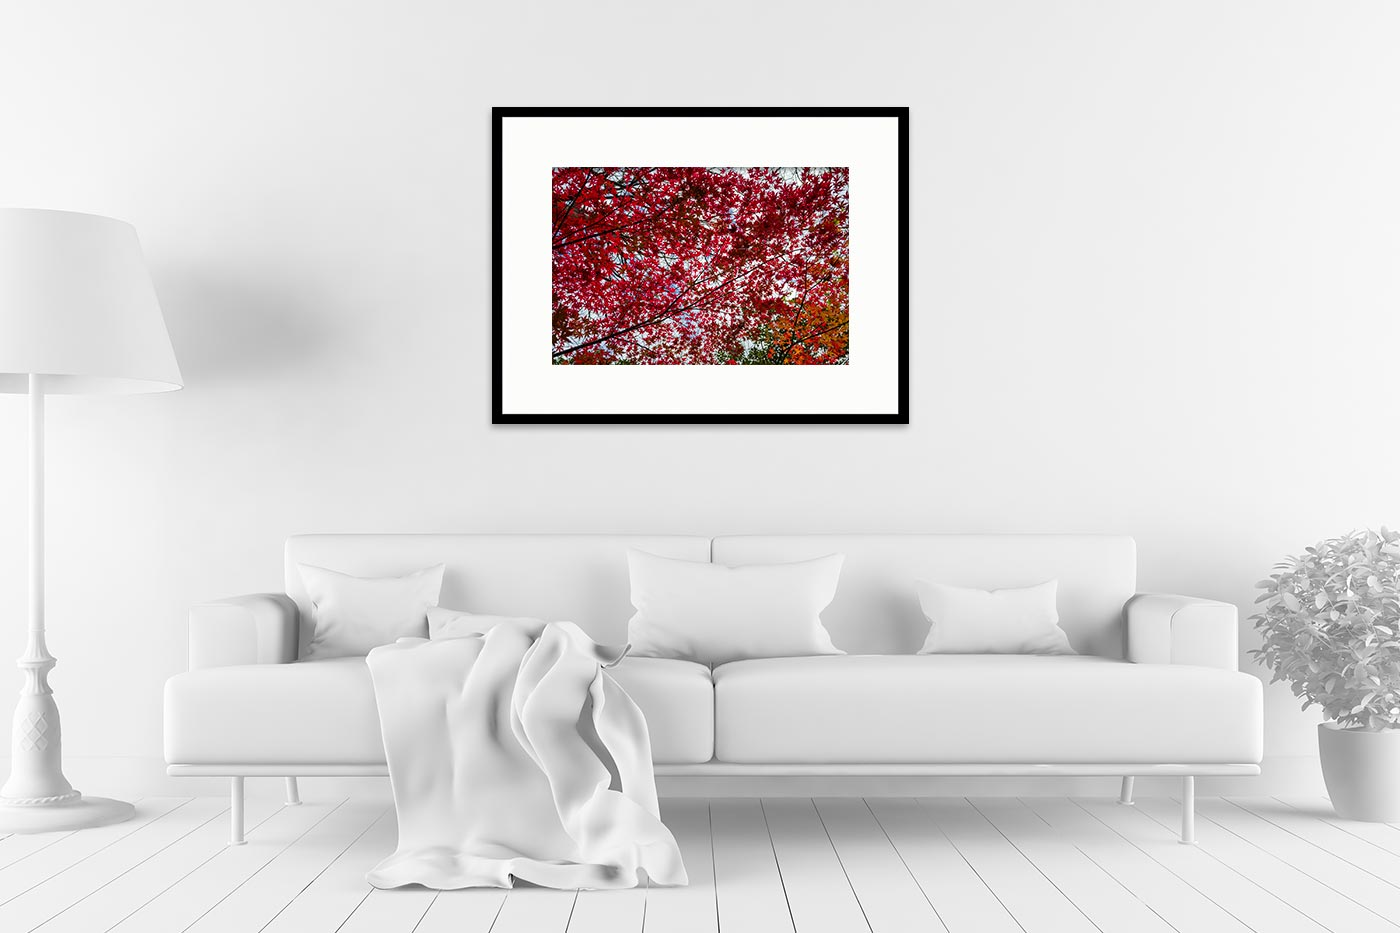 Cadre expo 60x80 Small red tree leaves